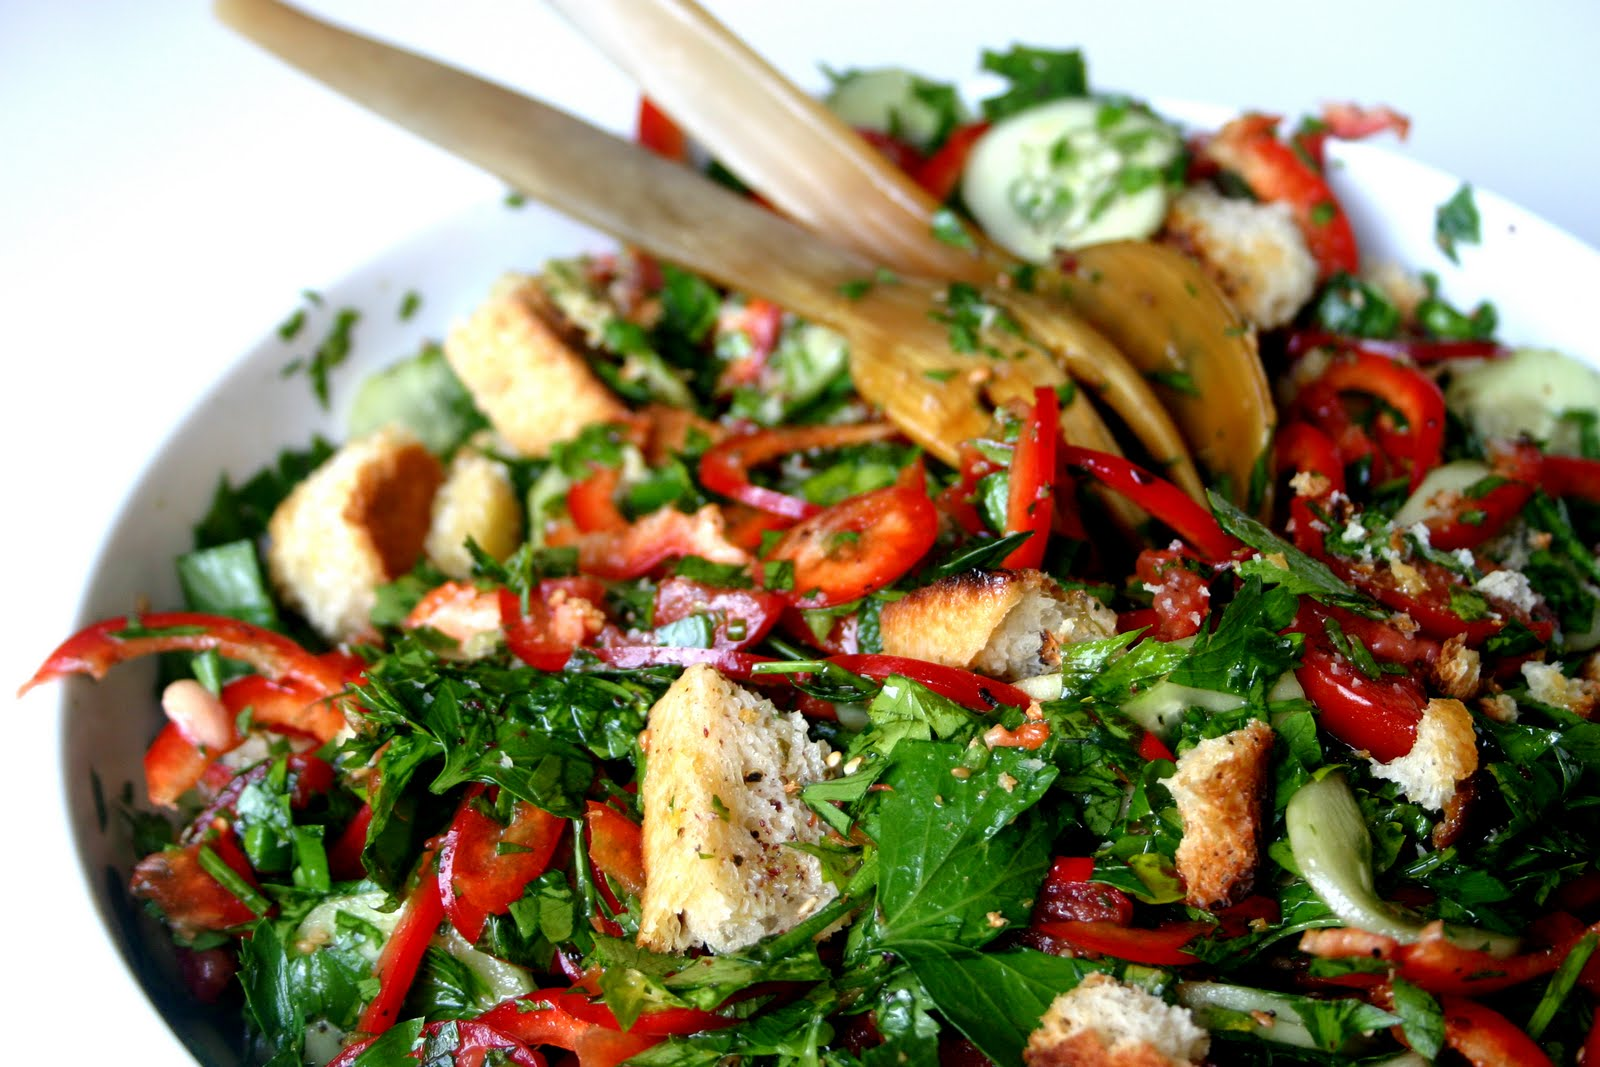 Nuts about food: Fattoush with za'atar croutons